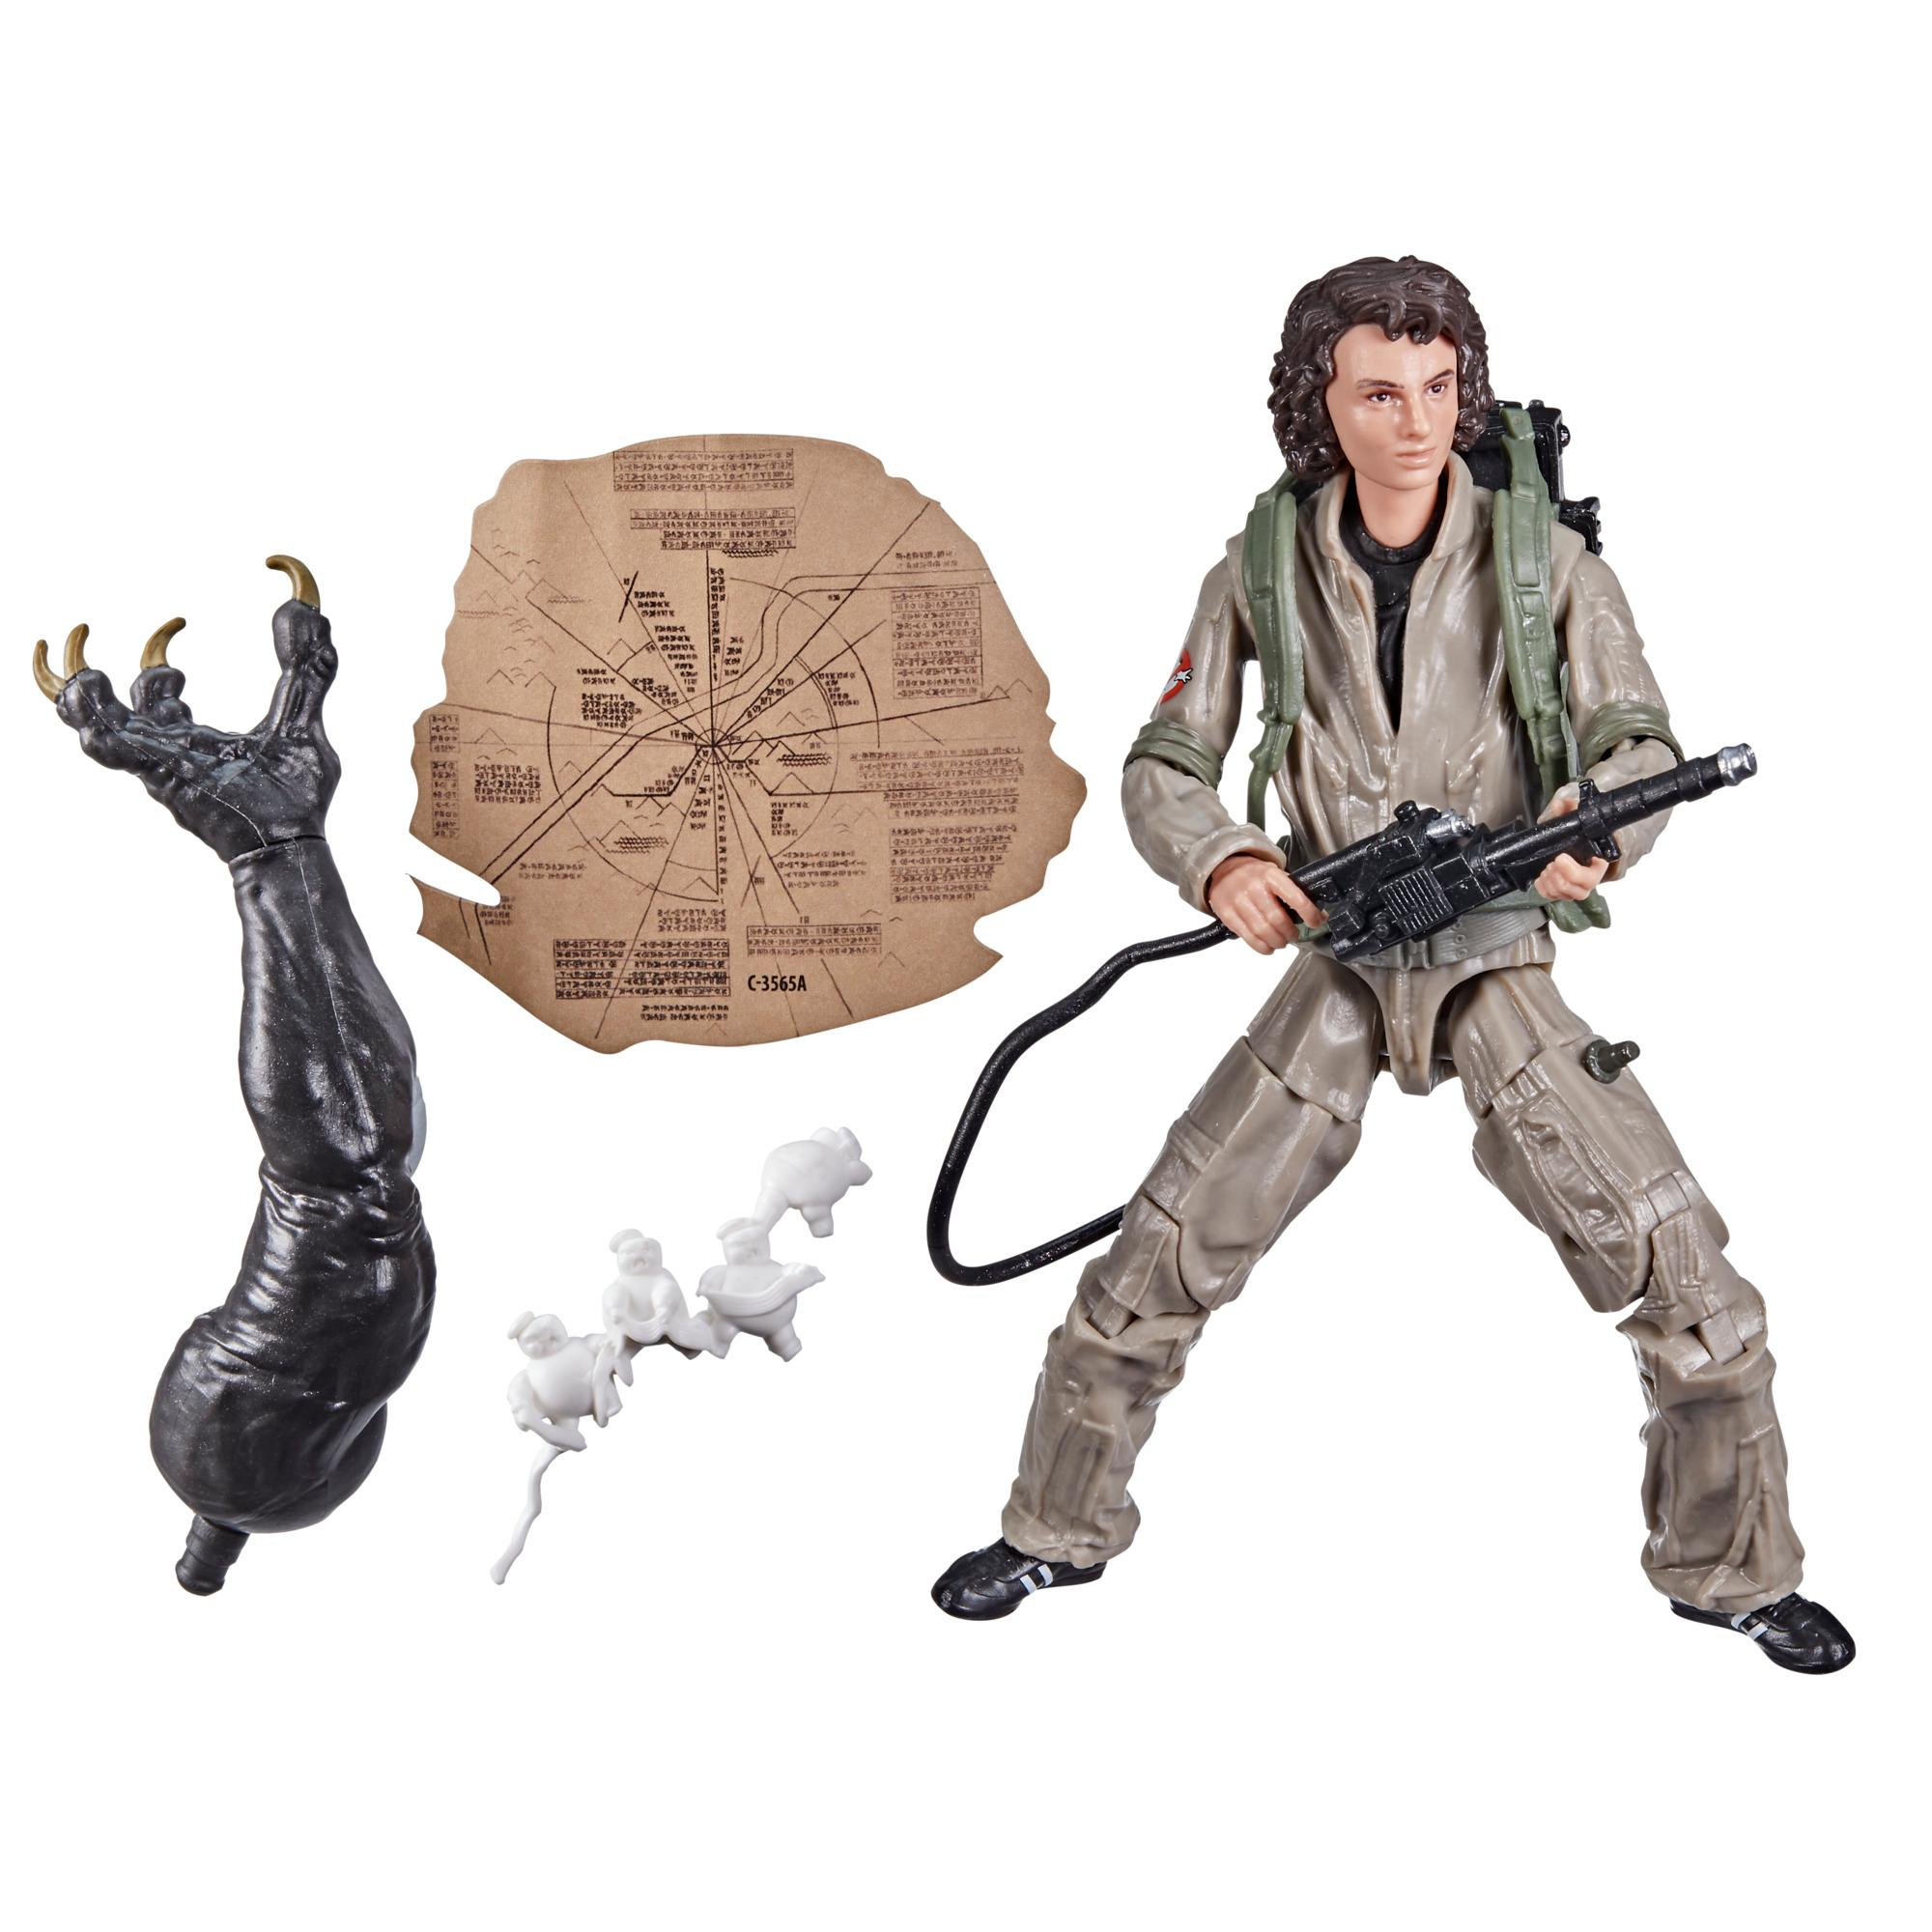 Ghostbusters Plasma Series Trevor Toy 6-Inch-Scale Collectible Ghostbusters: Afterlife Action Figure, Kids Ages 4 and Up